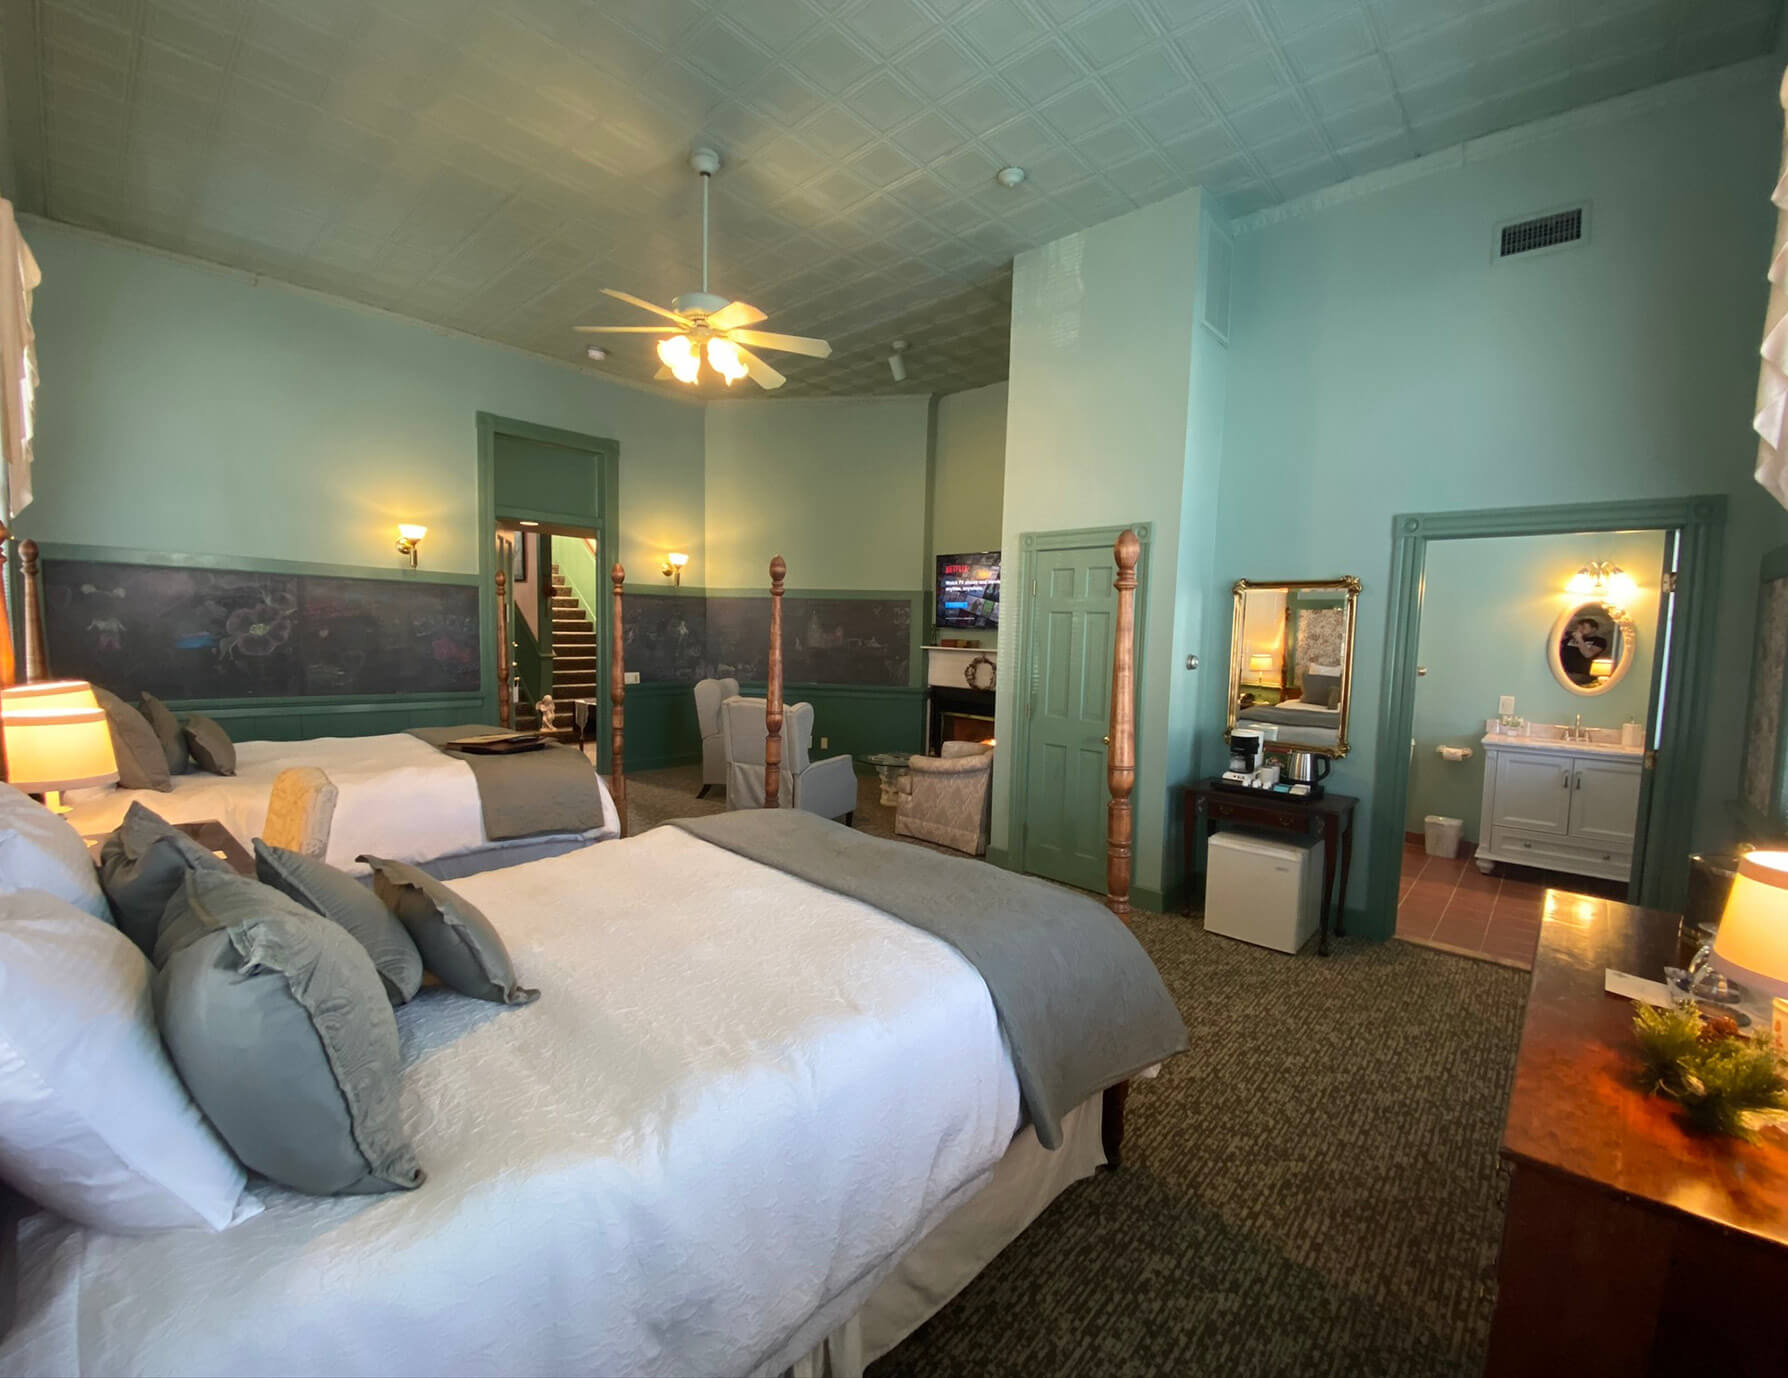 La Sedgwick room with beds, bathroom, and sitting area with TV - Lenox Hotel